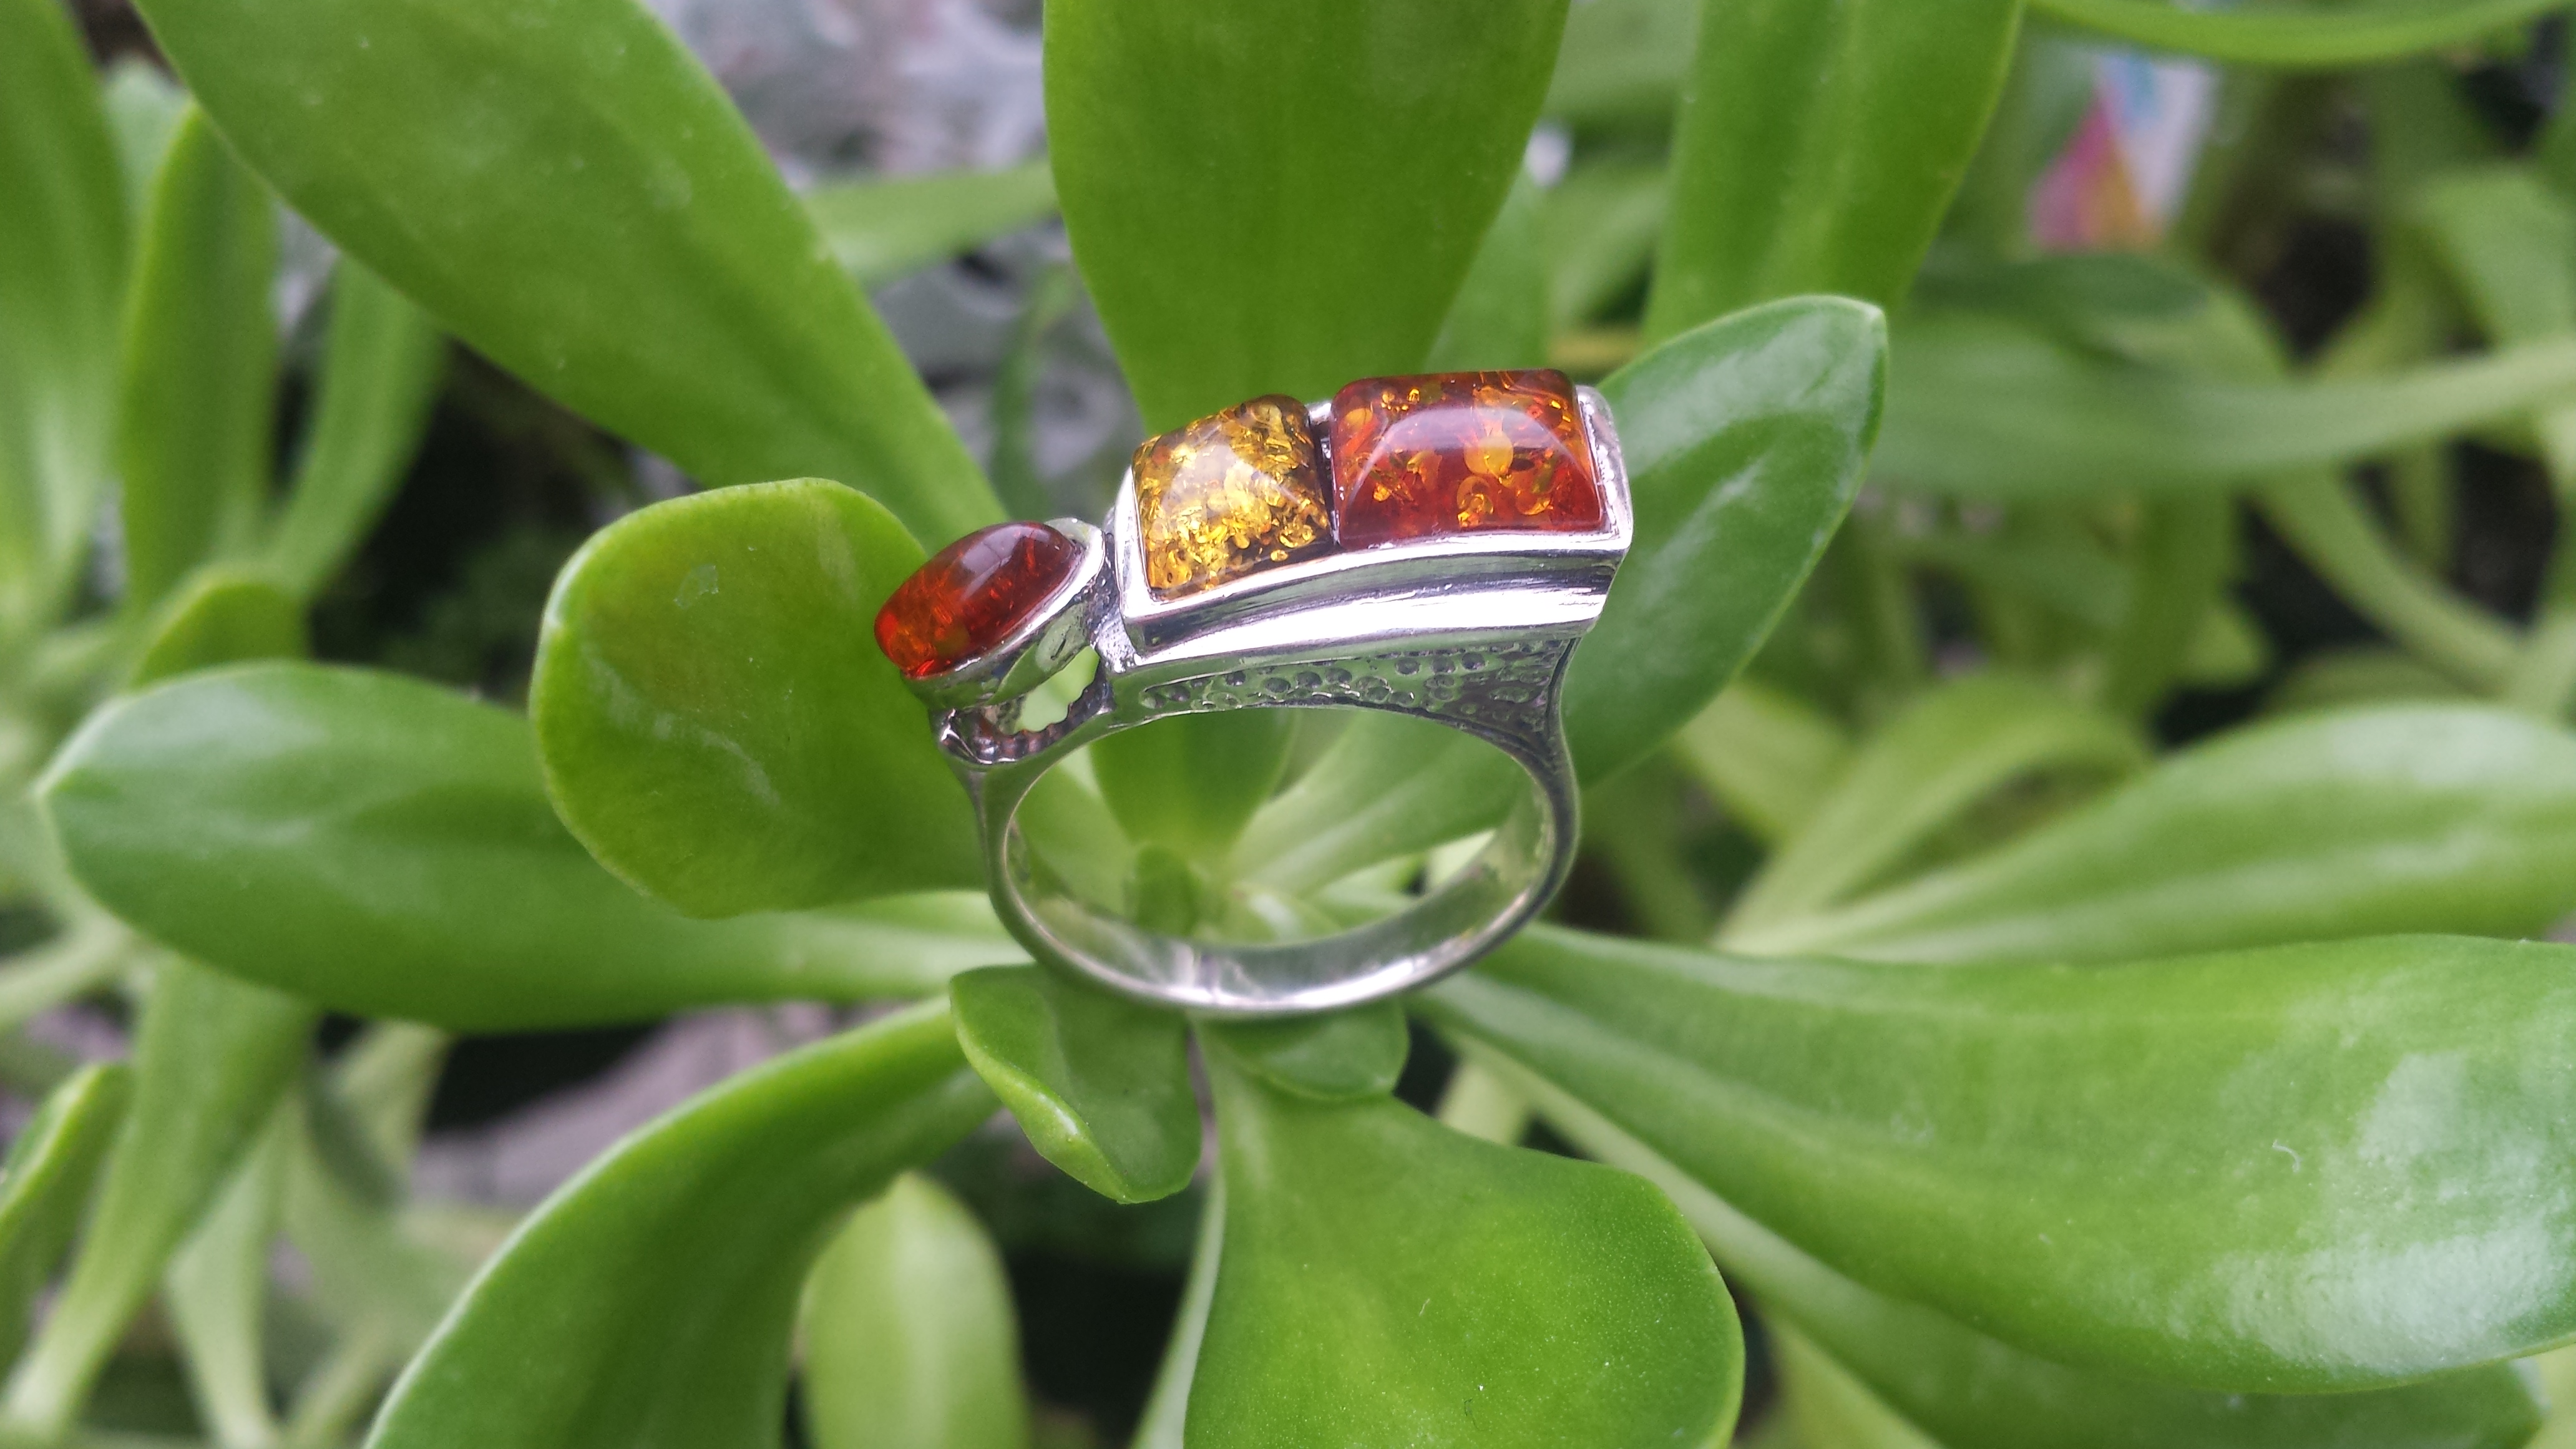 REAL BALTIC AMBER RING WITH 925 STERLING SILVER. 7G